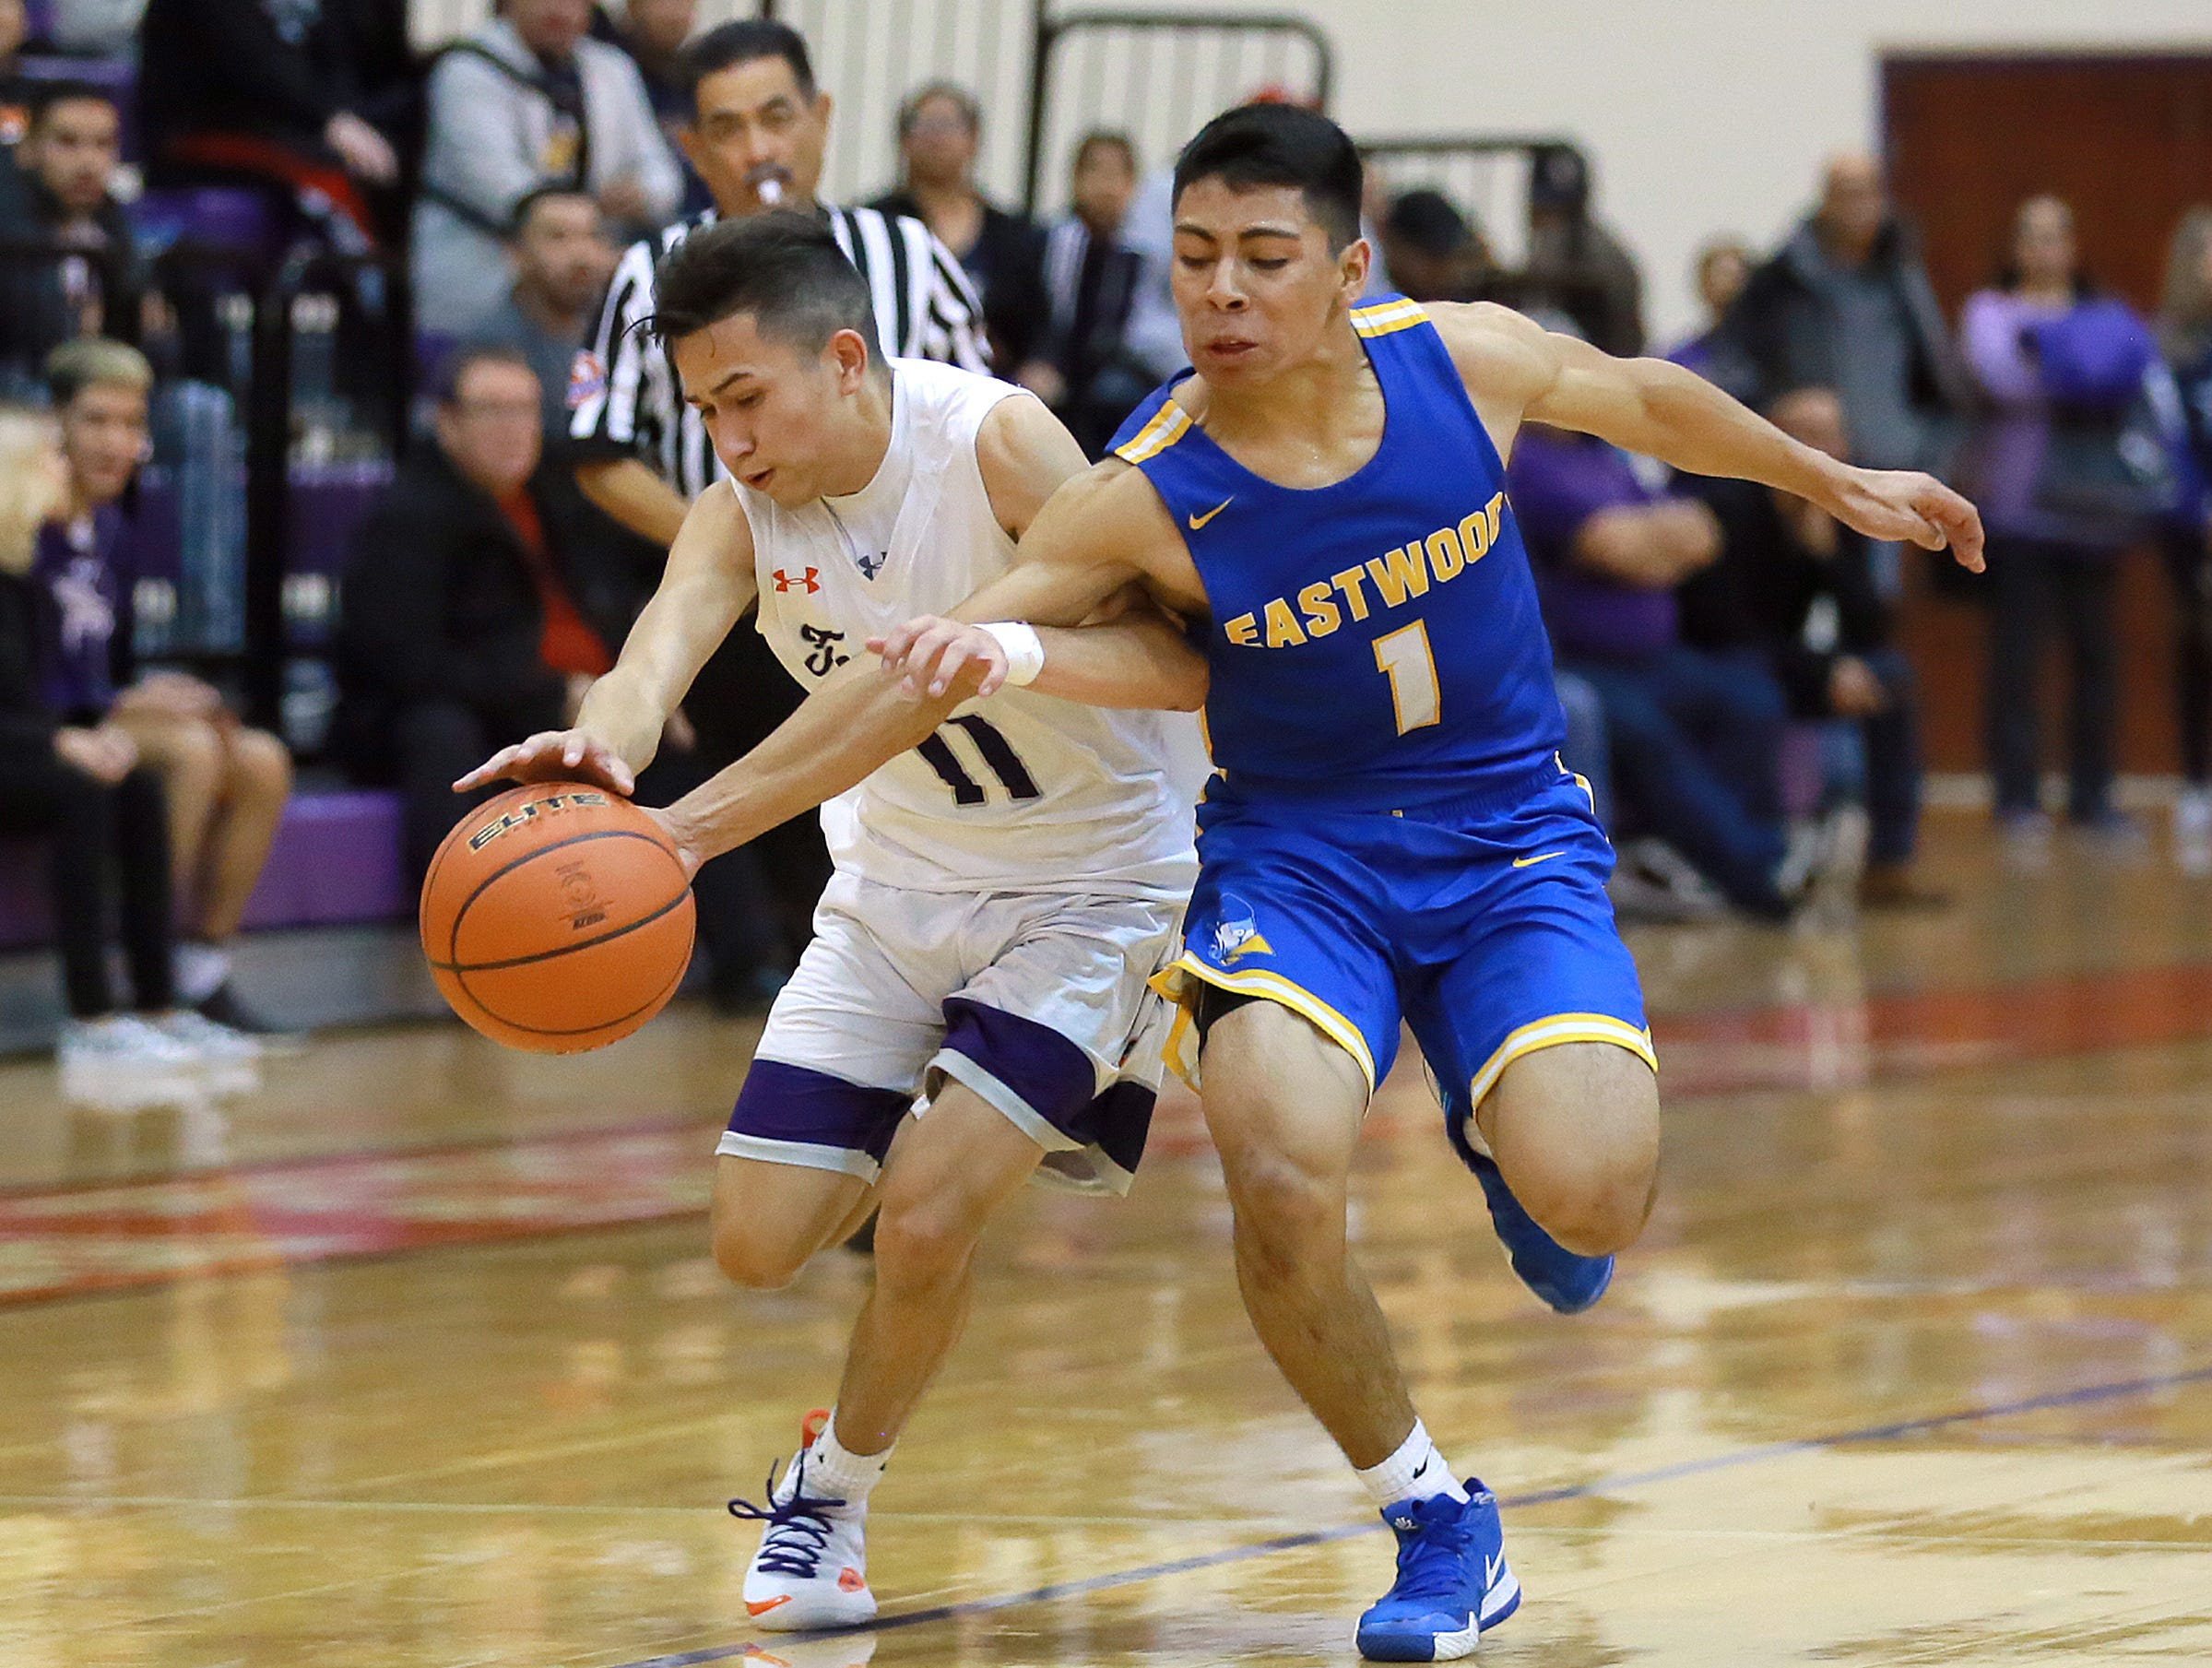 El Paso high school basketball: Tuesday, Dec. 11 results